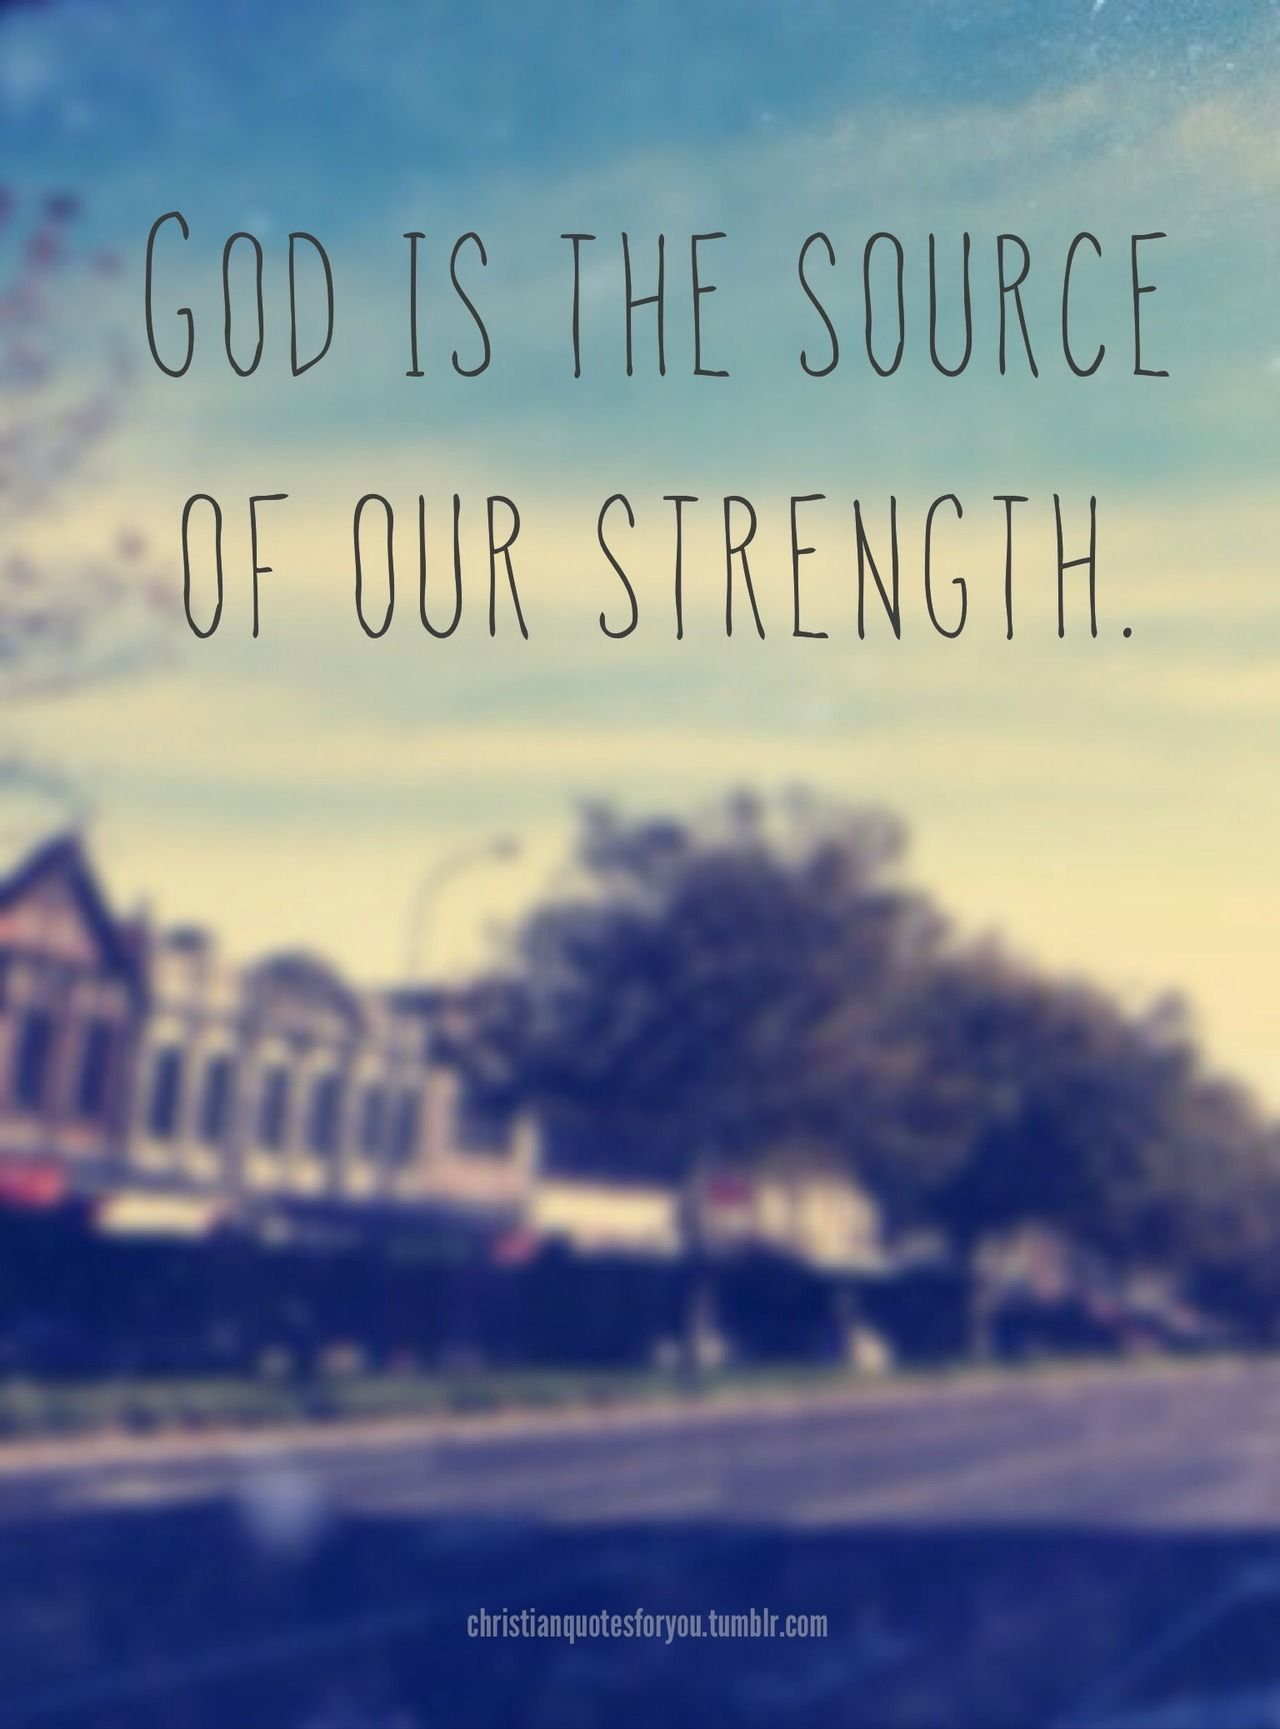 GOD is the ultimate source, all-knowing, all-sufficient